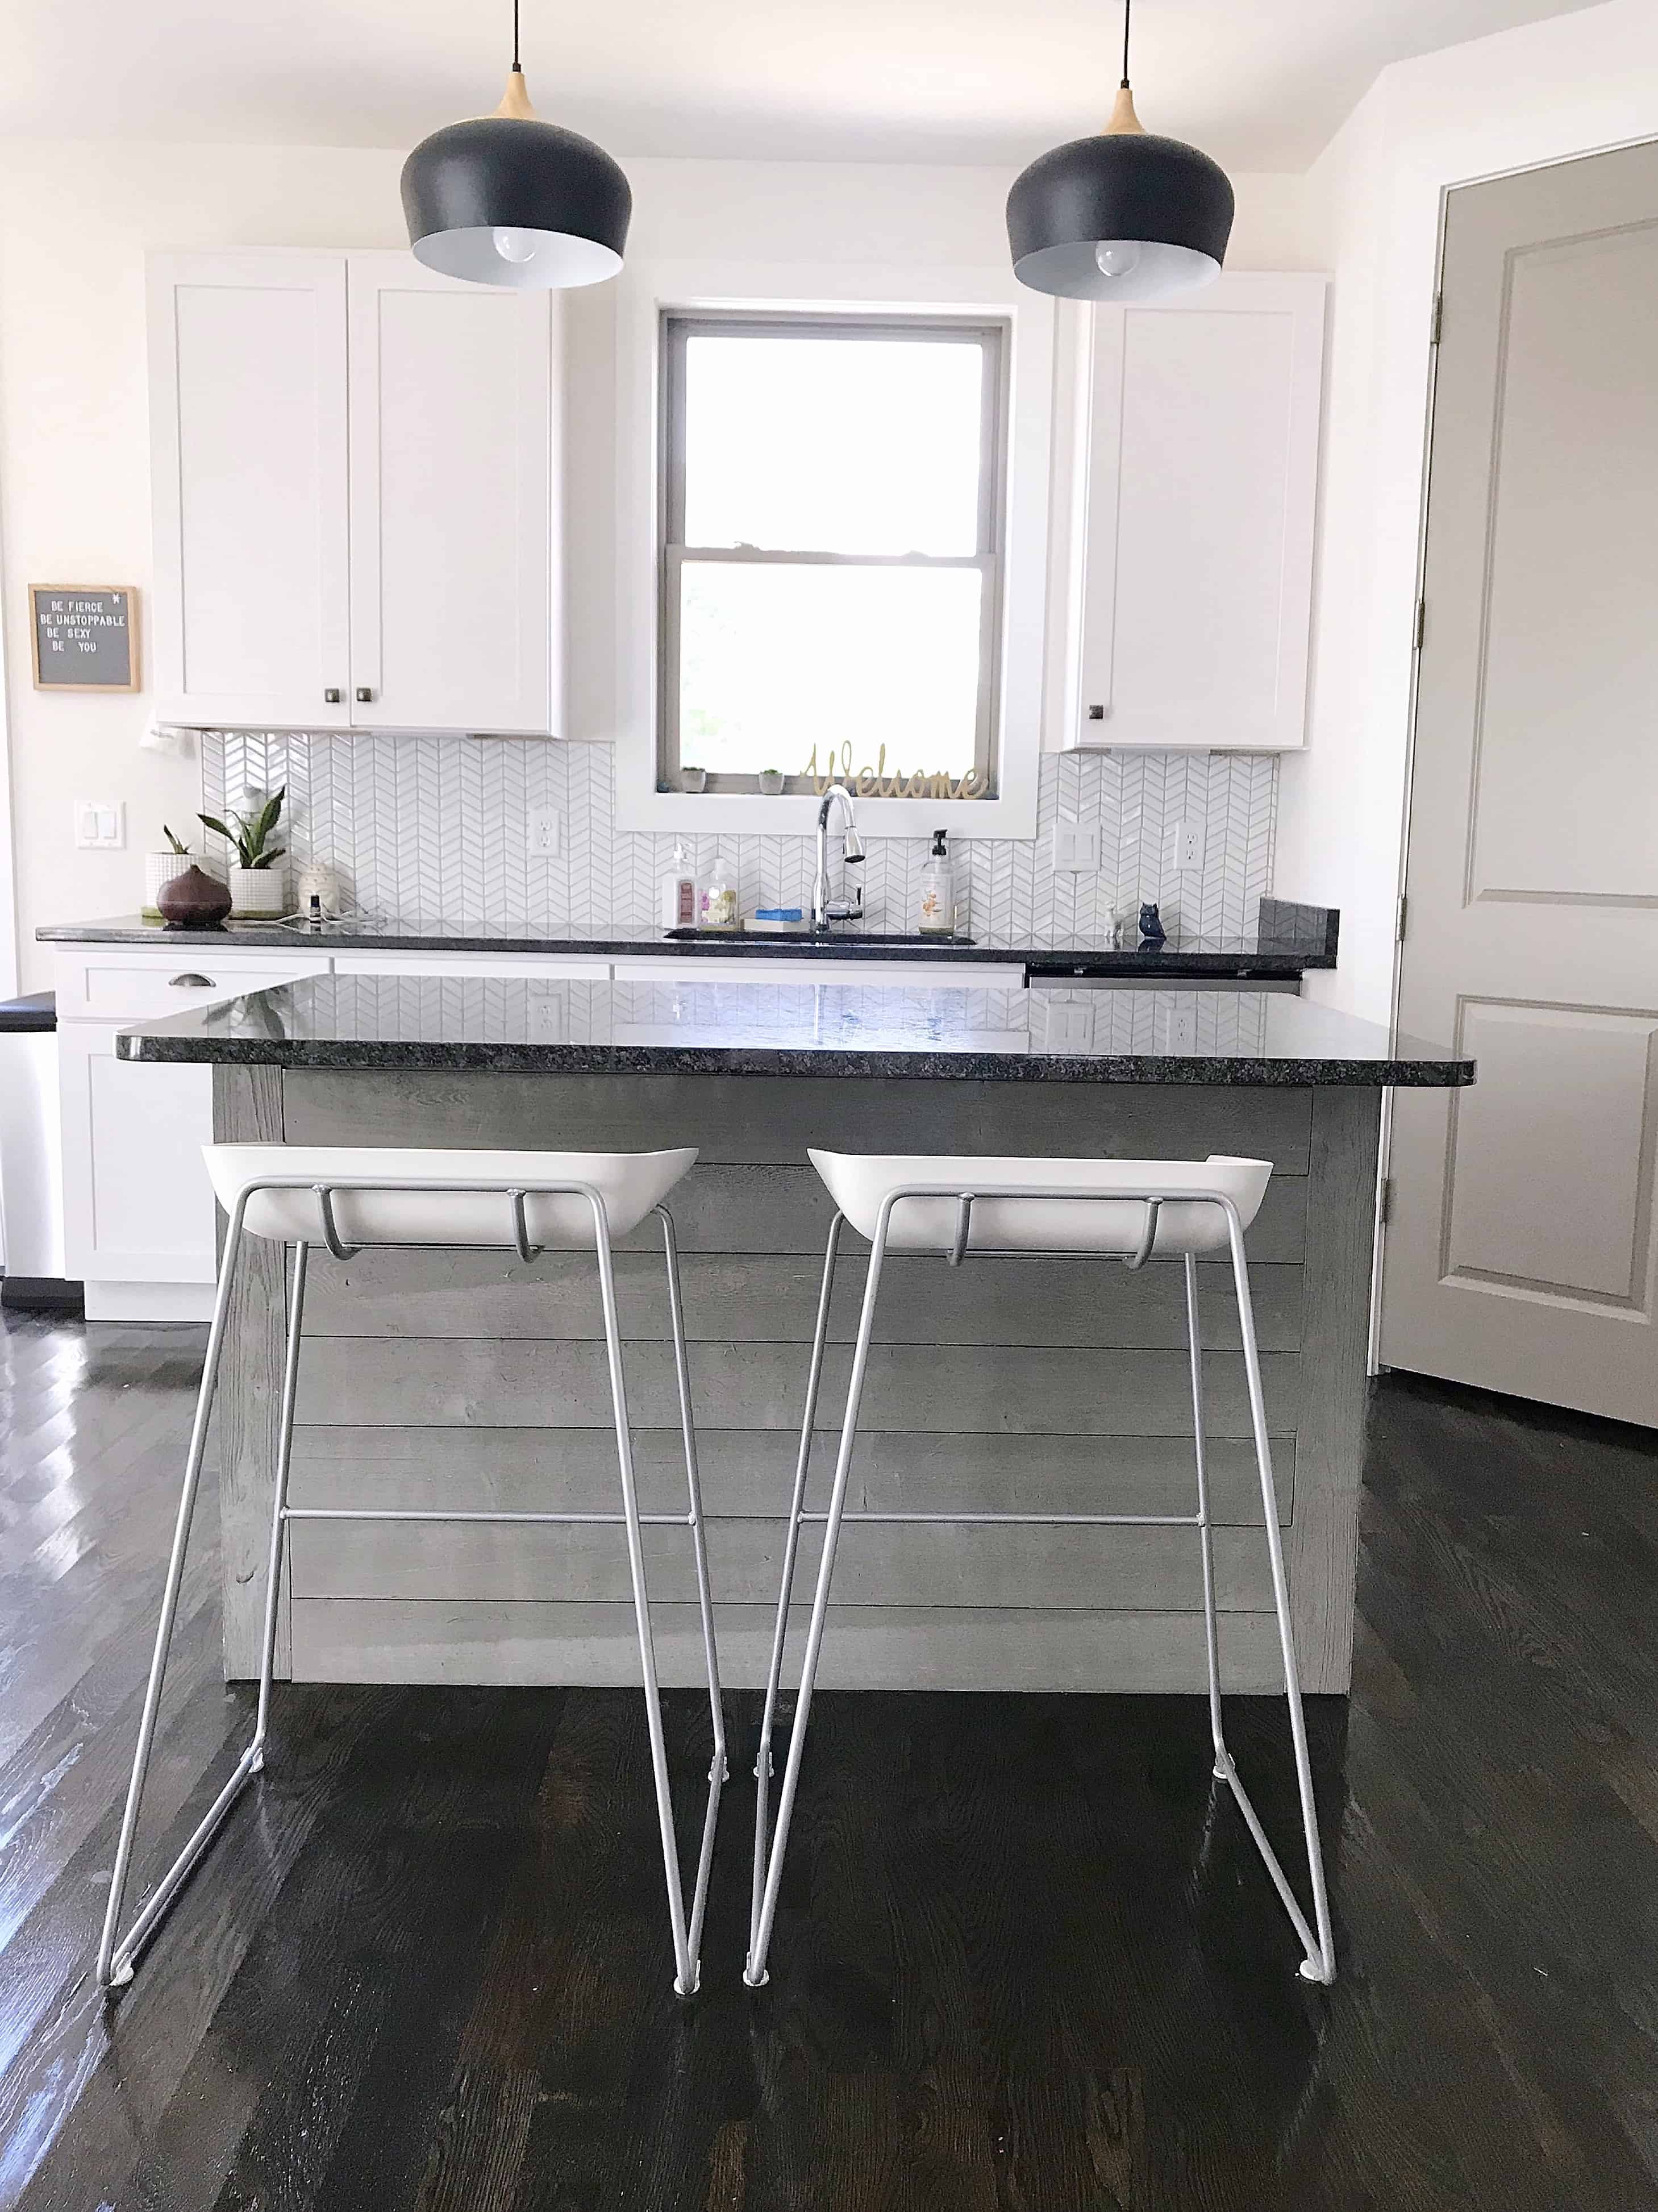 White and black kitchen with island and bar stools